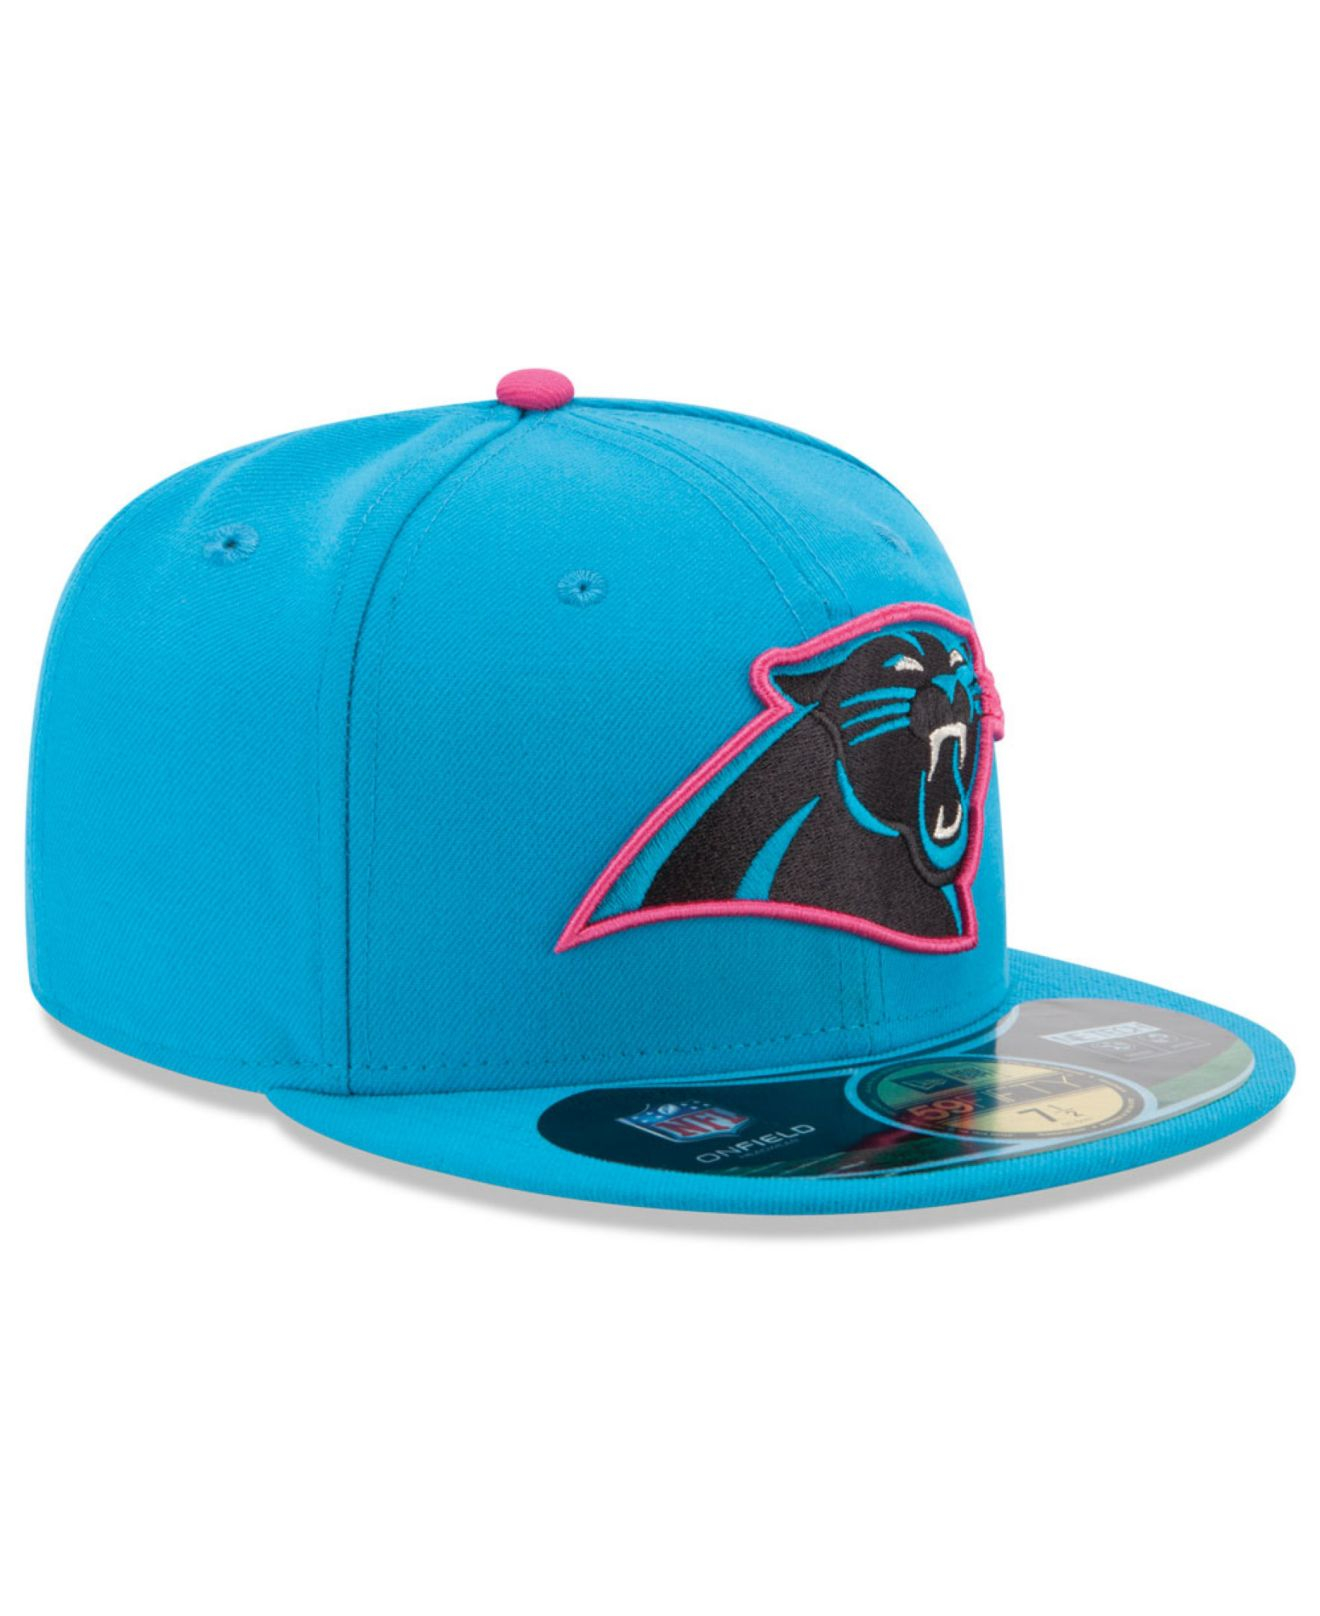 1e644b1b32a Lyst - KTZ Carolina Panthers Breast Cancer Awareness 59Fifty Cap in ...